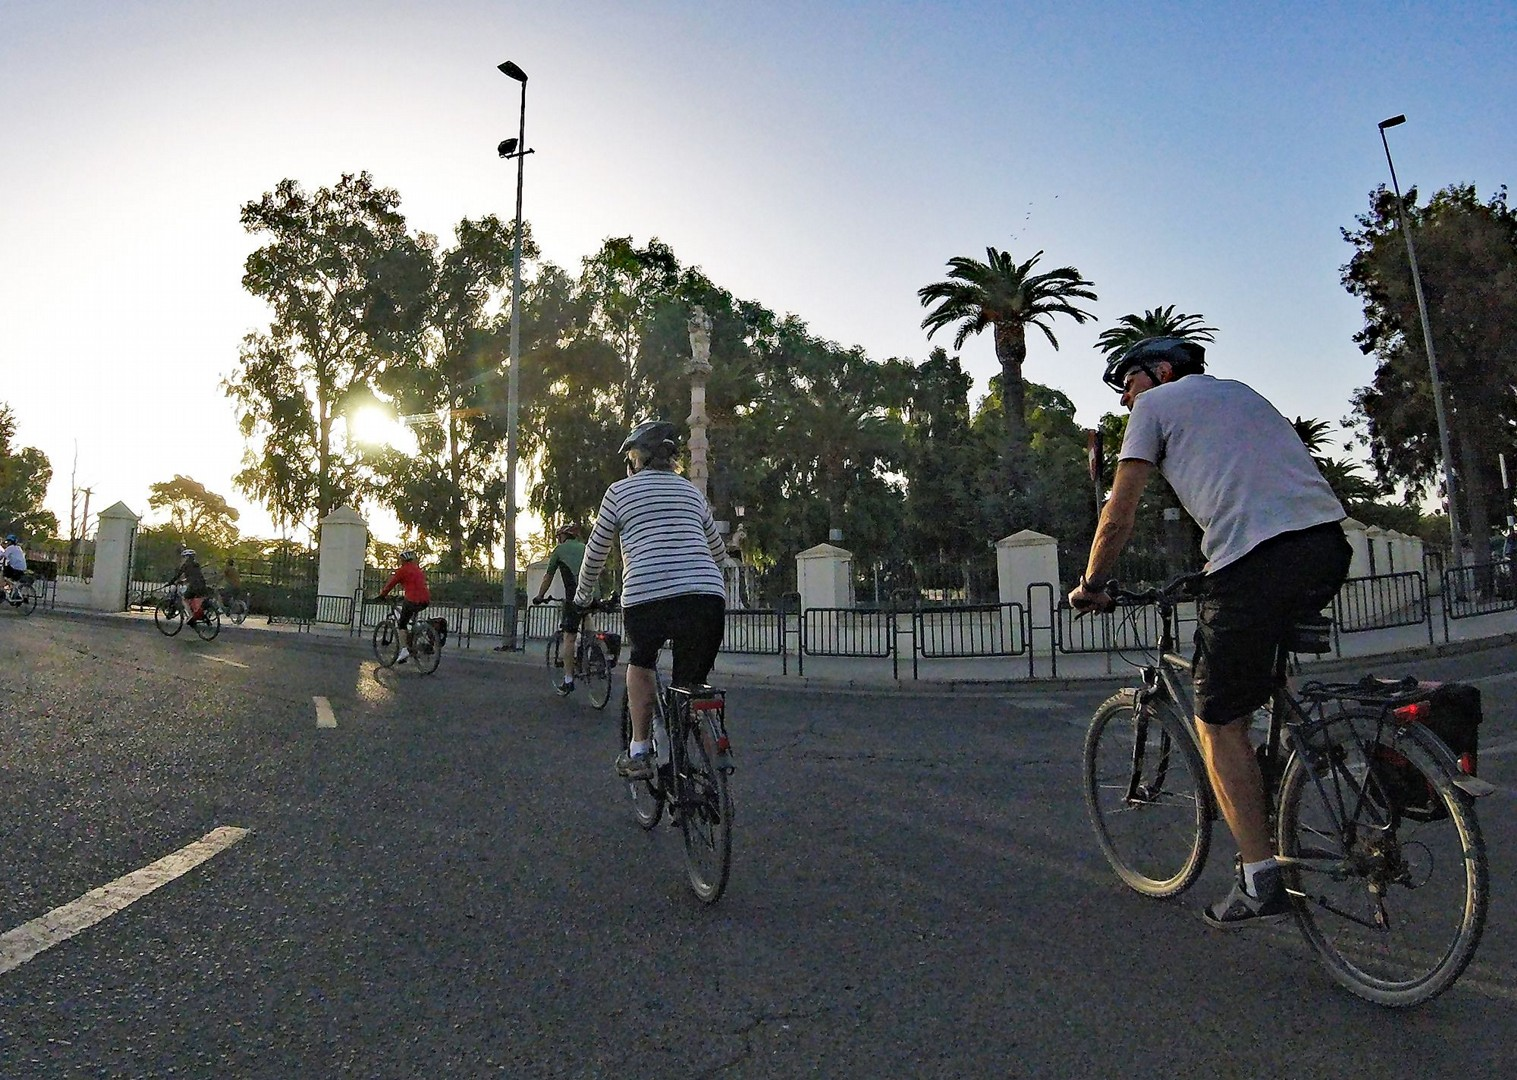 andalucia-granada-to-seville-guided-leisure-cycling-holiday-in-spain.jpg - Spain - Granada to Seville - Guided Leisure Cycling Holiday - Leisure Cycling